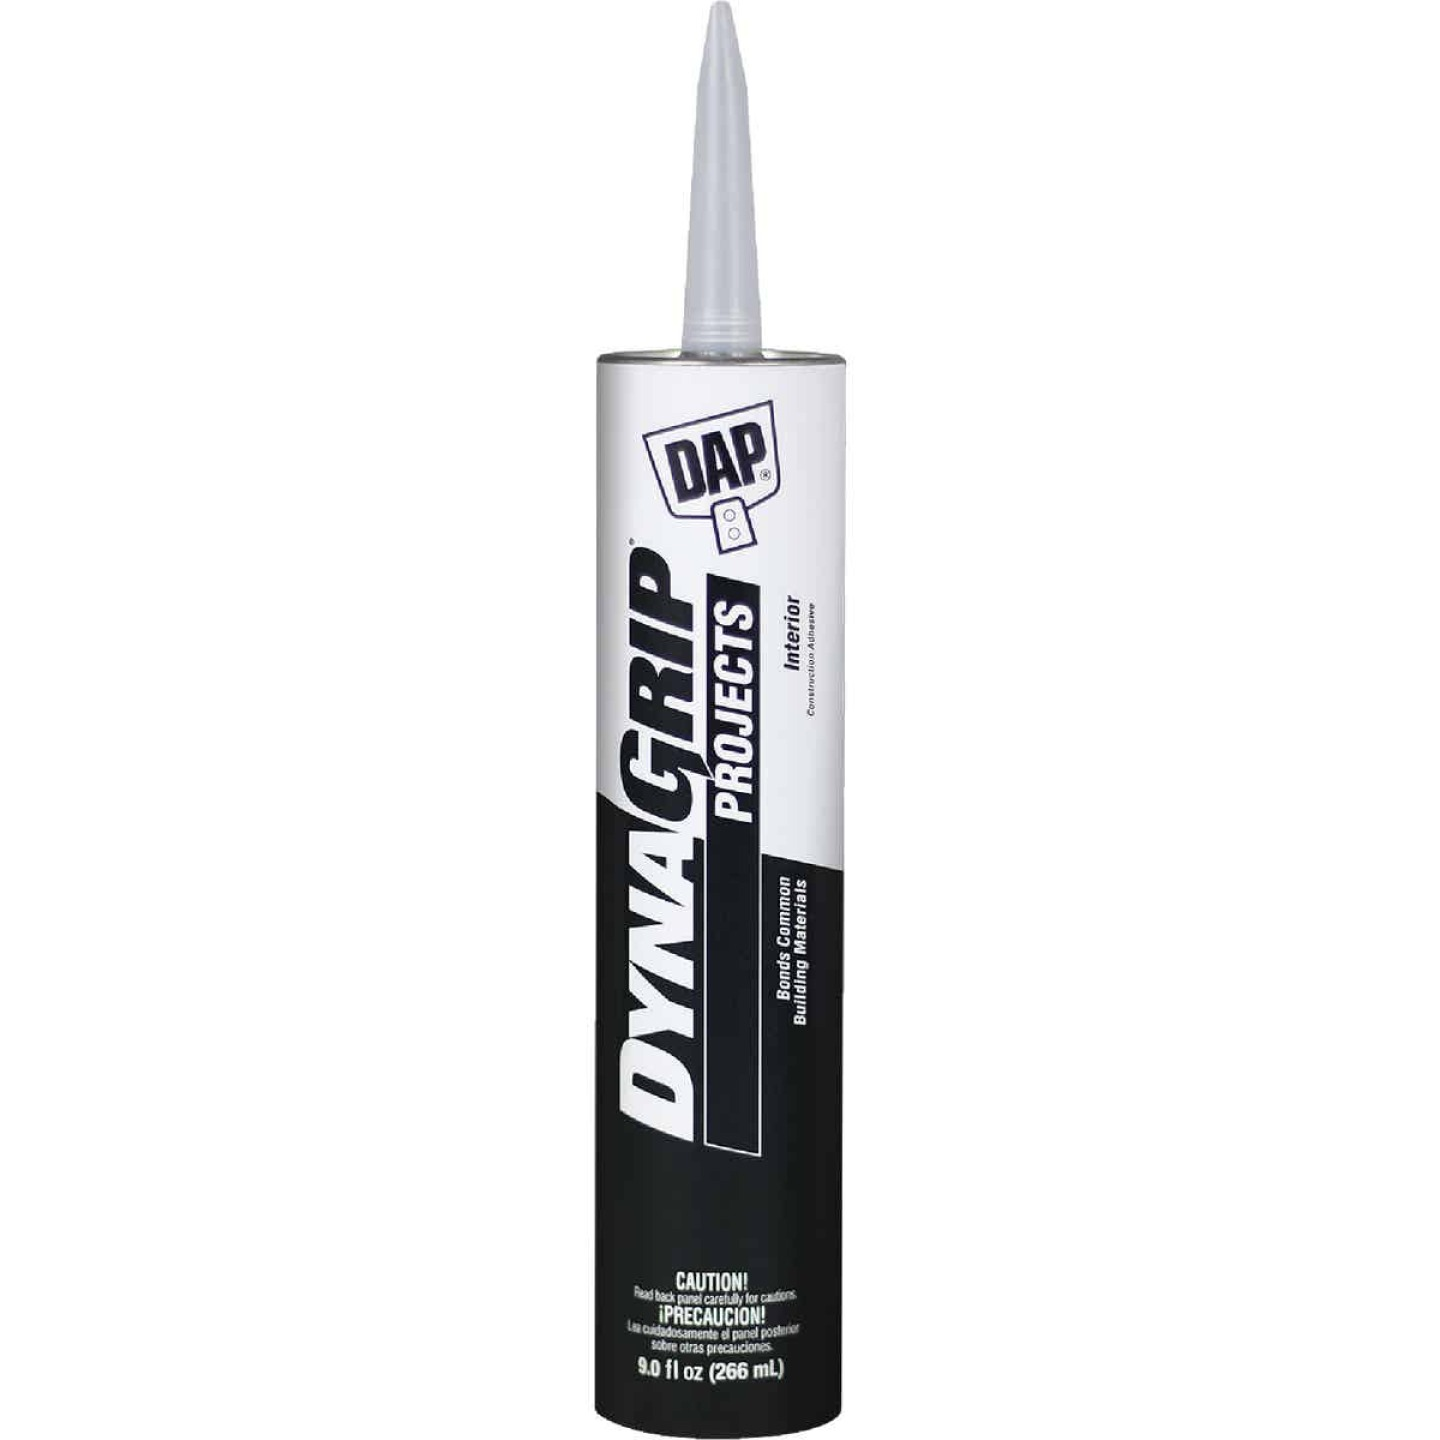 DAP DynaGrip Projects 9 Oz. Construction Adhesive Image 1